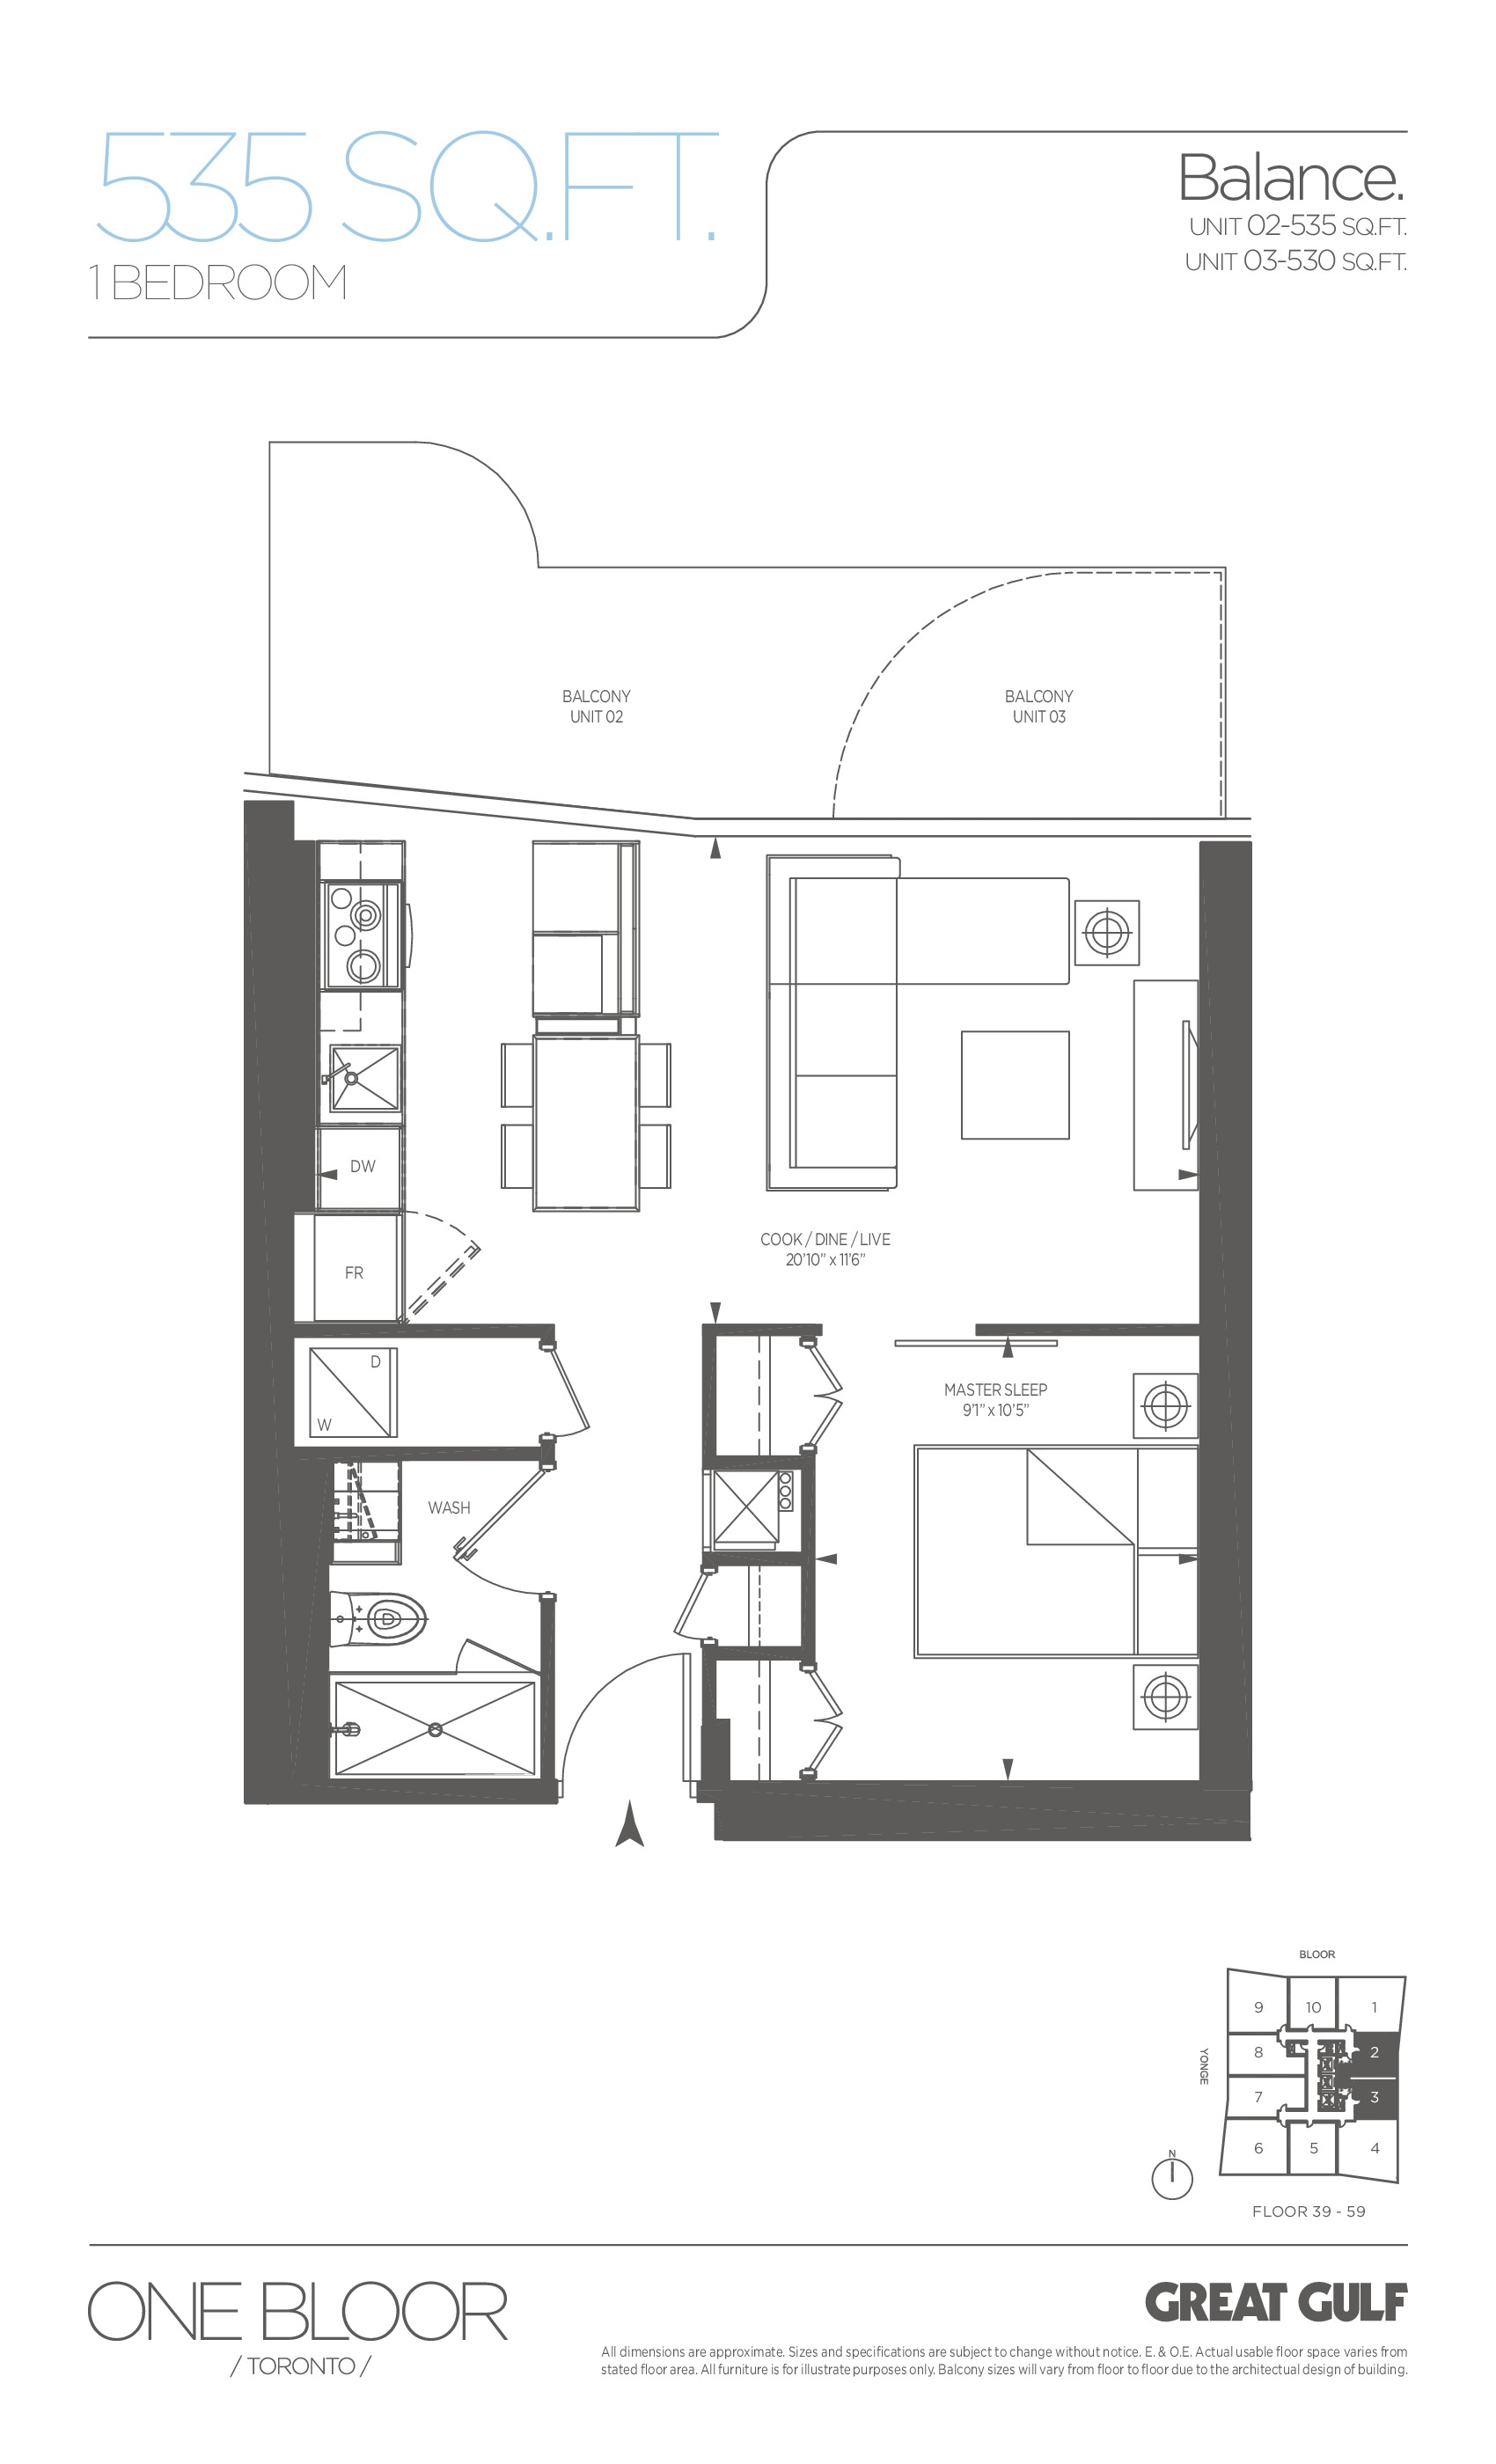 Balance Floor Plan at One Bloor Condos - 535 sq.ft